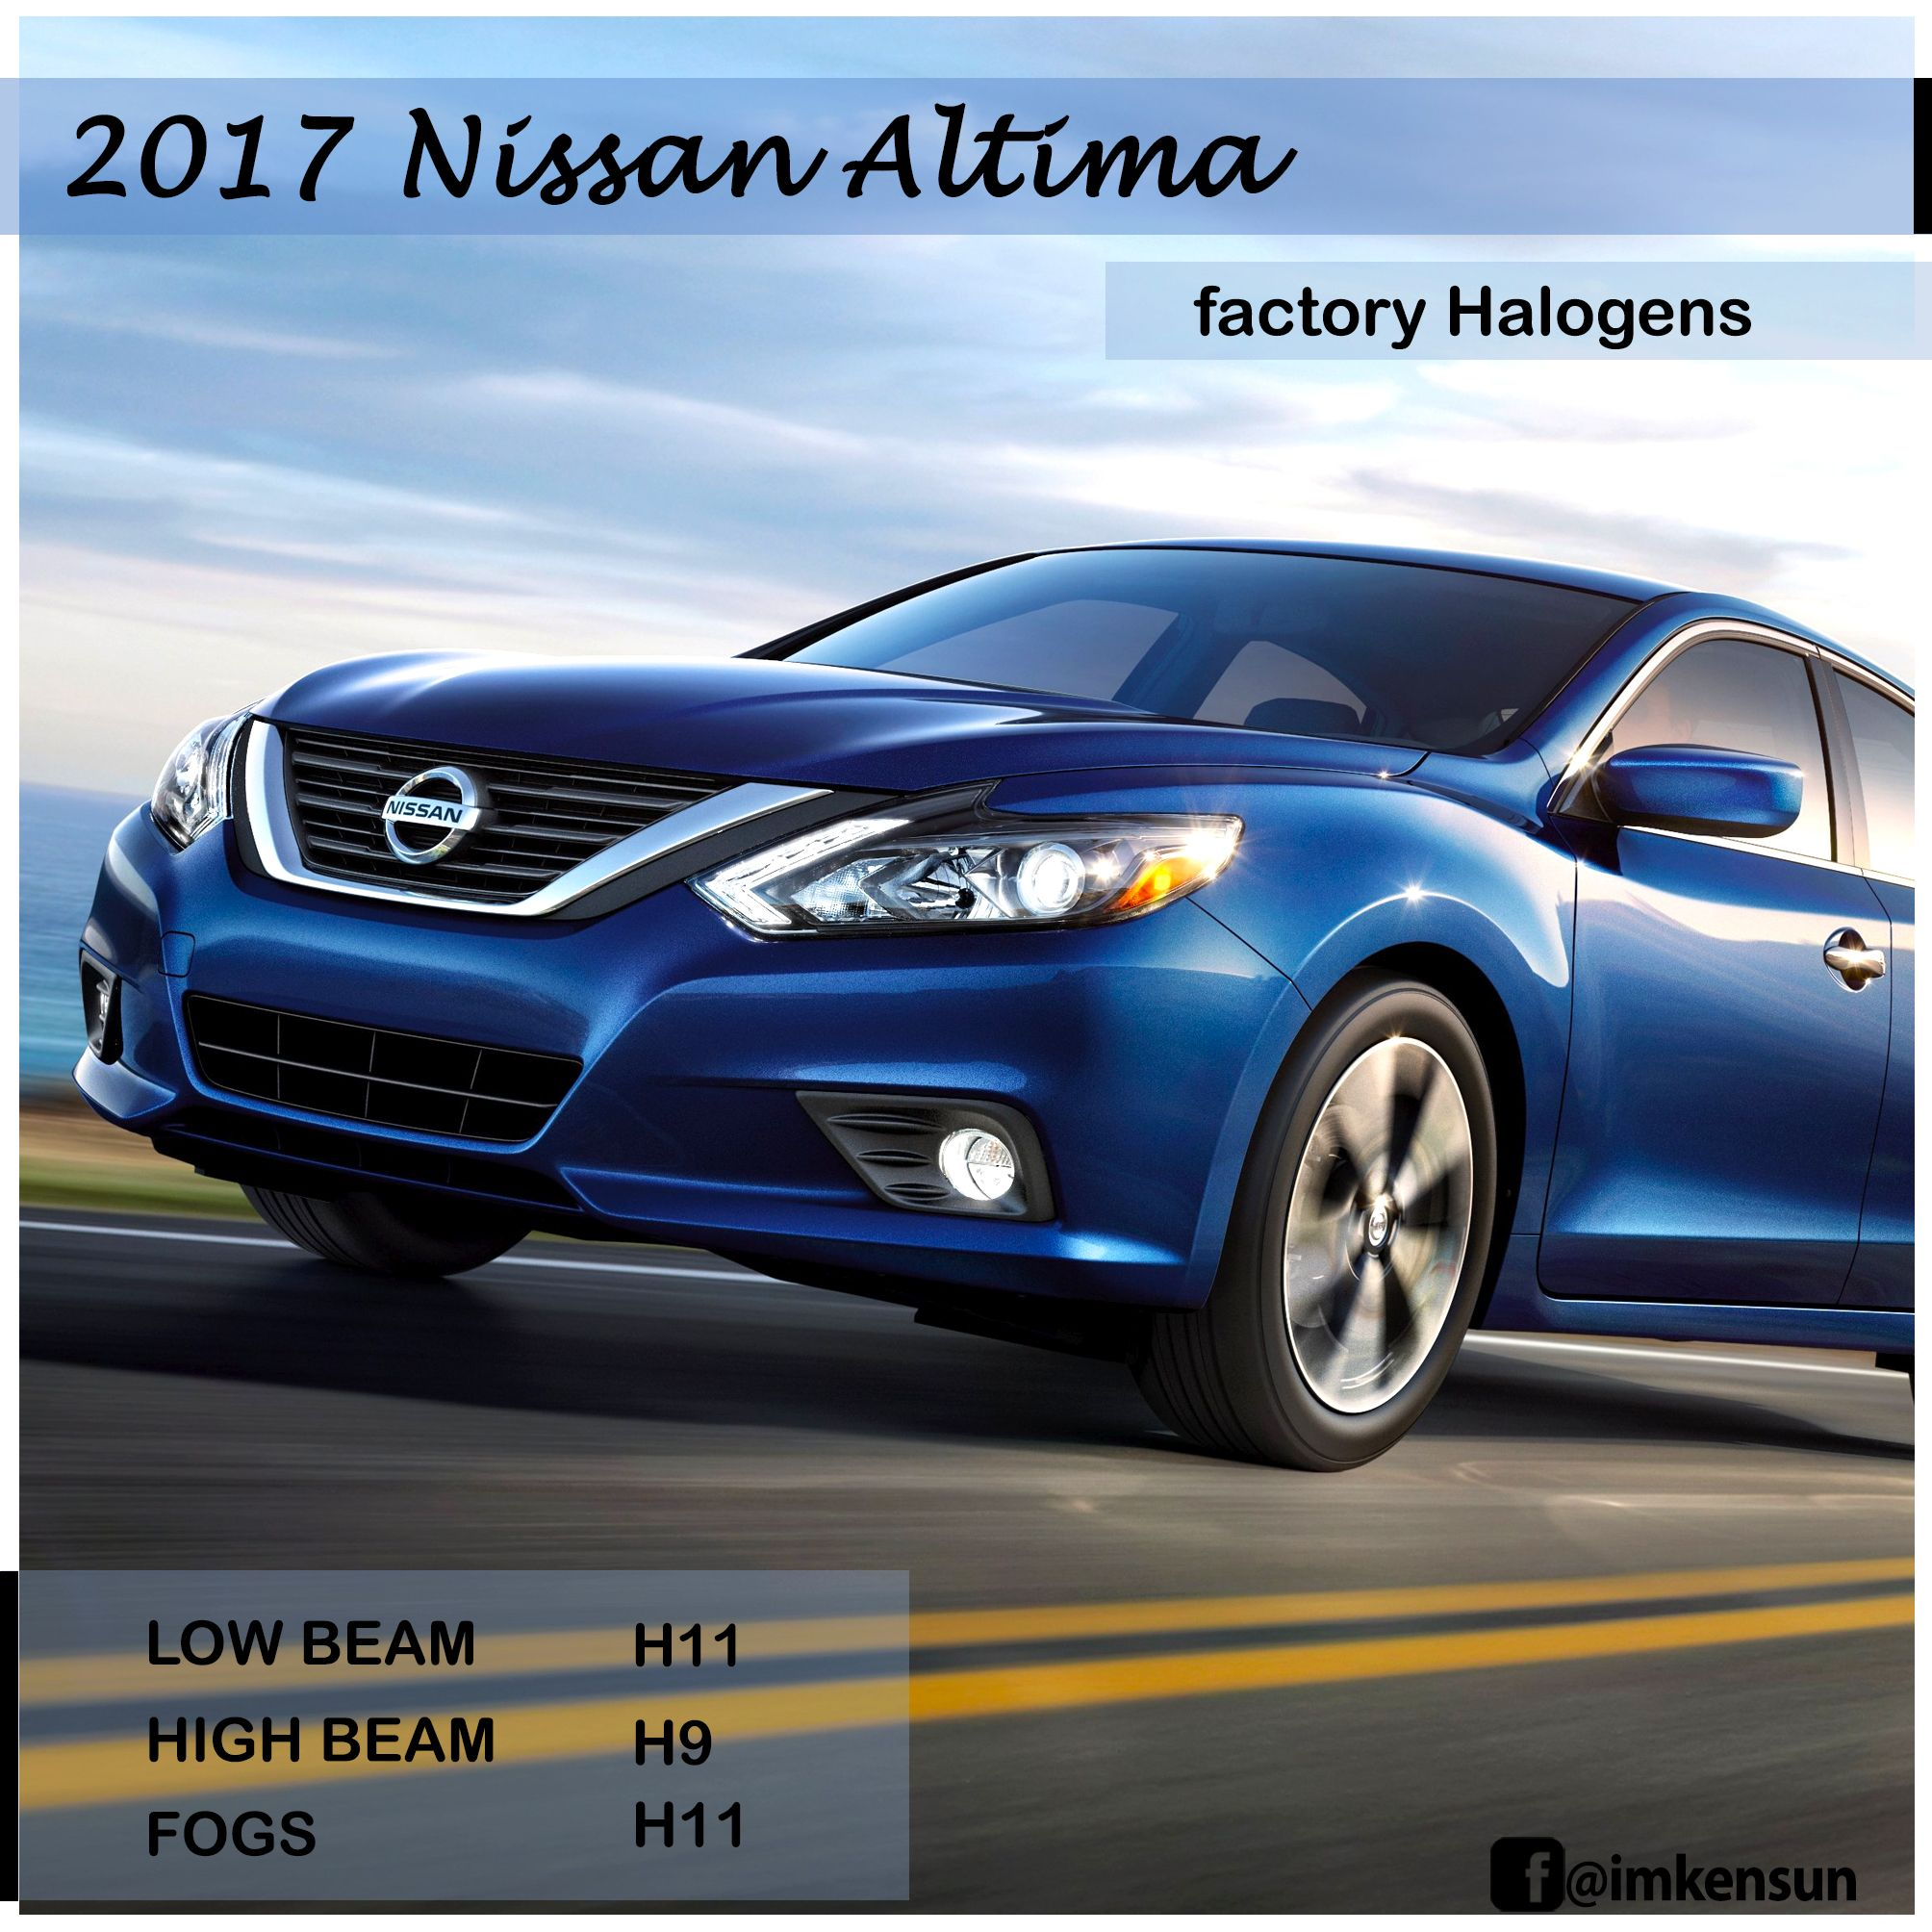 Bulb Sizes For 2017 Nissan Altima With Oem Halogens H11 For Low